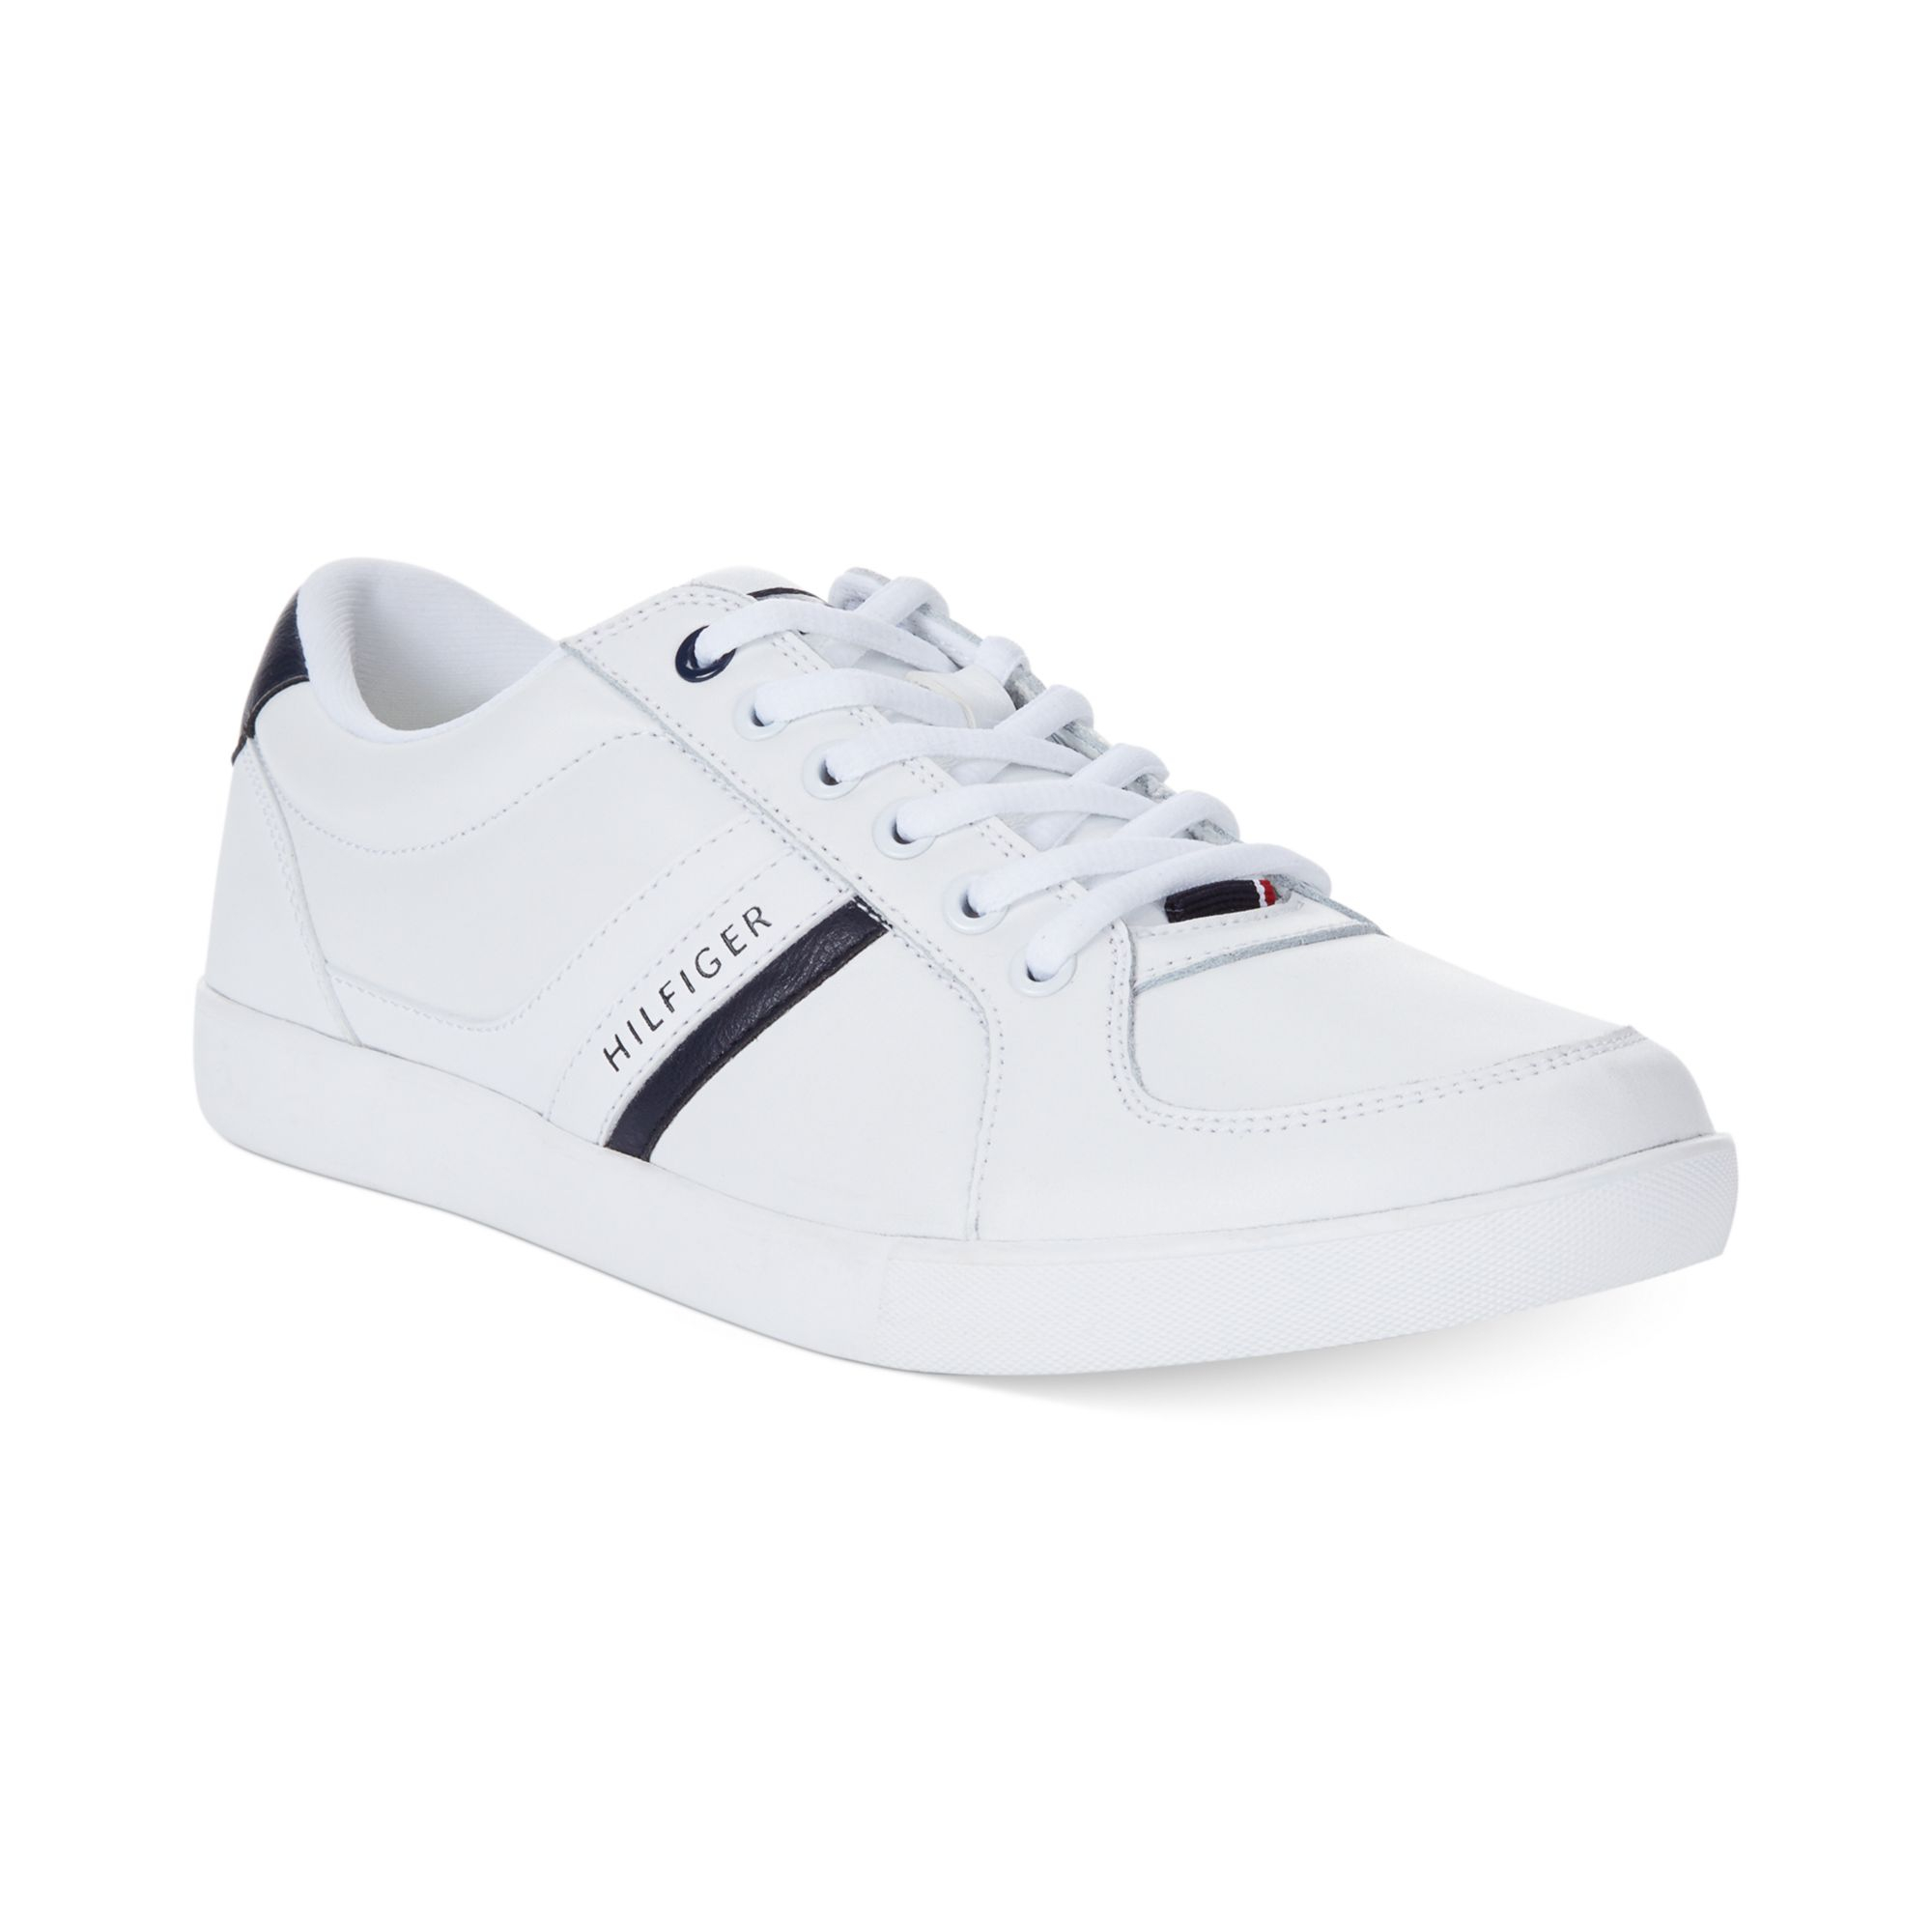 00c78cdf Tommy Hilfiger Thorne Sneakers in White for Men - Lyst